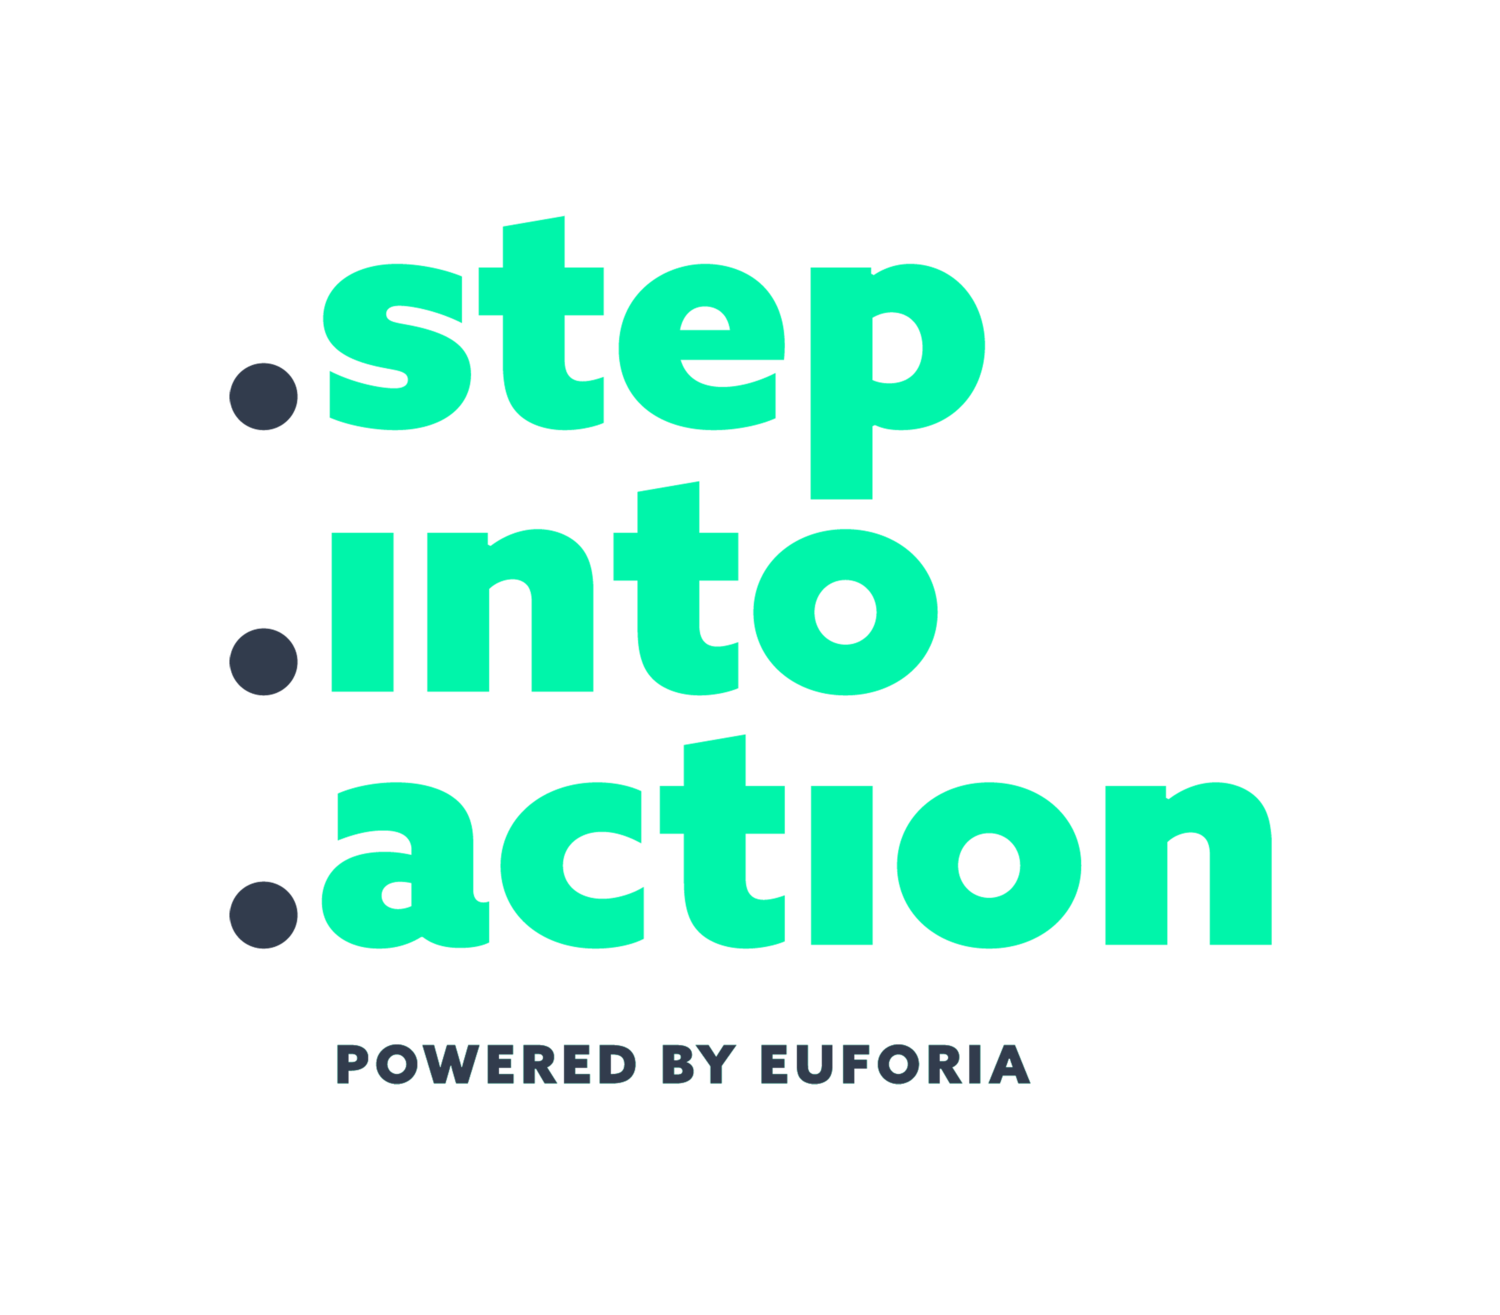 logo+step+into+action+high+definition.png